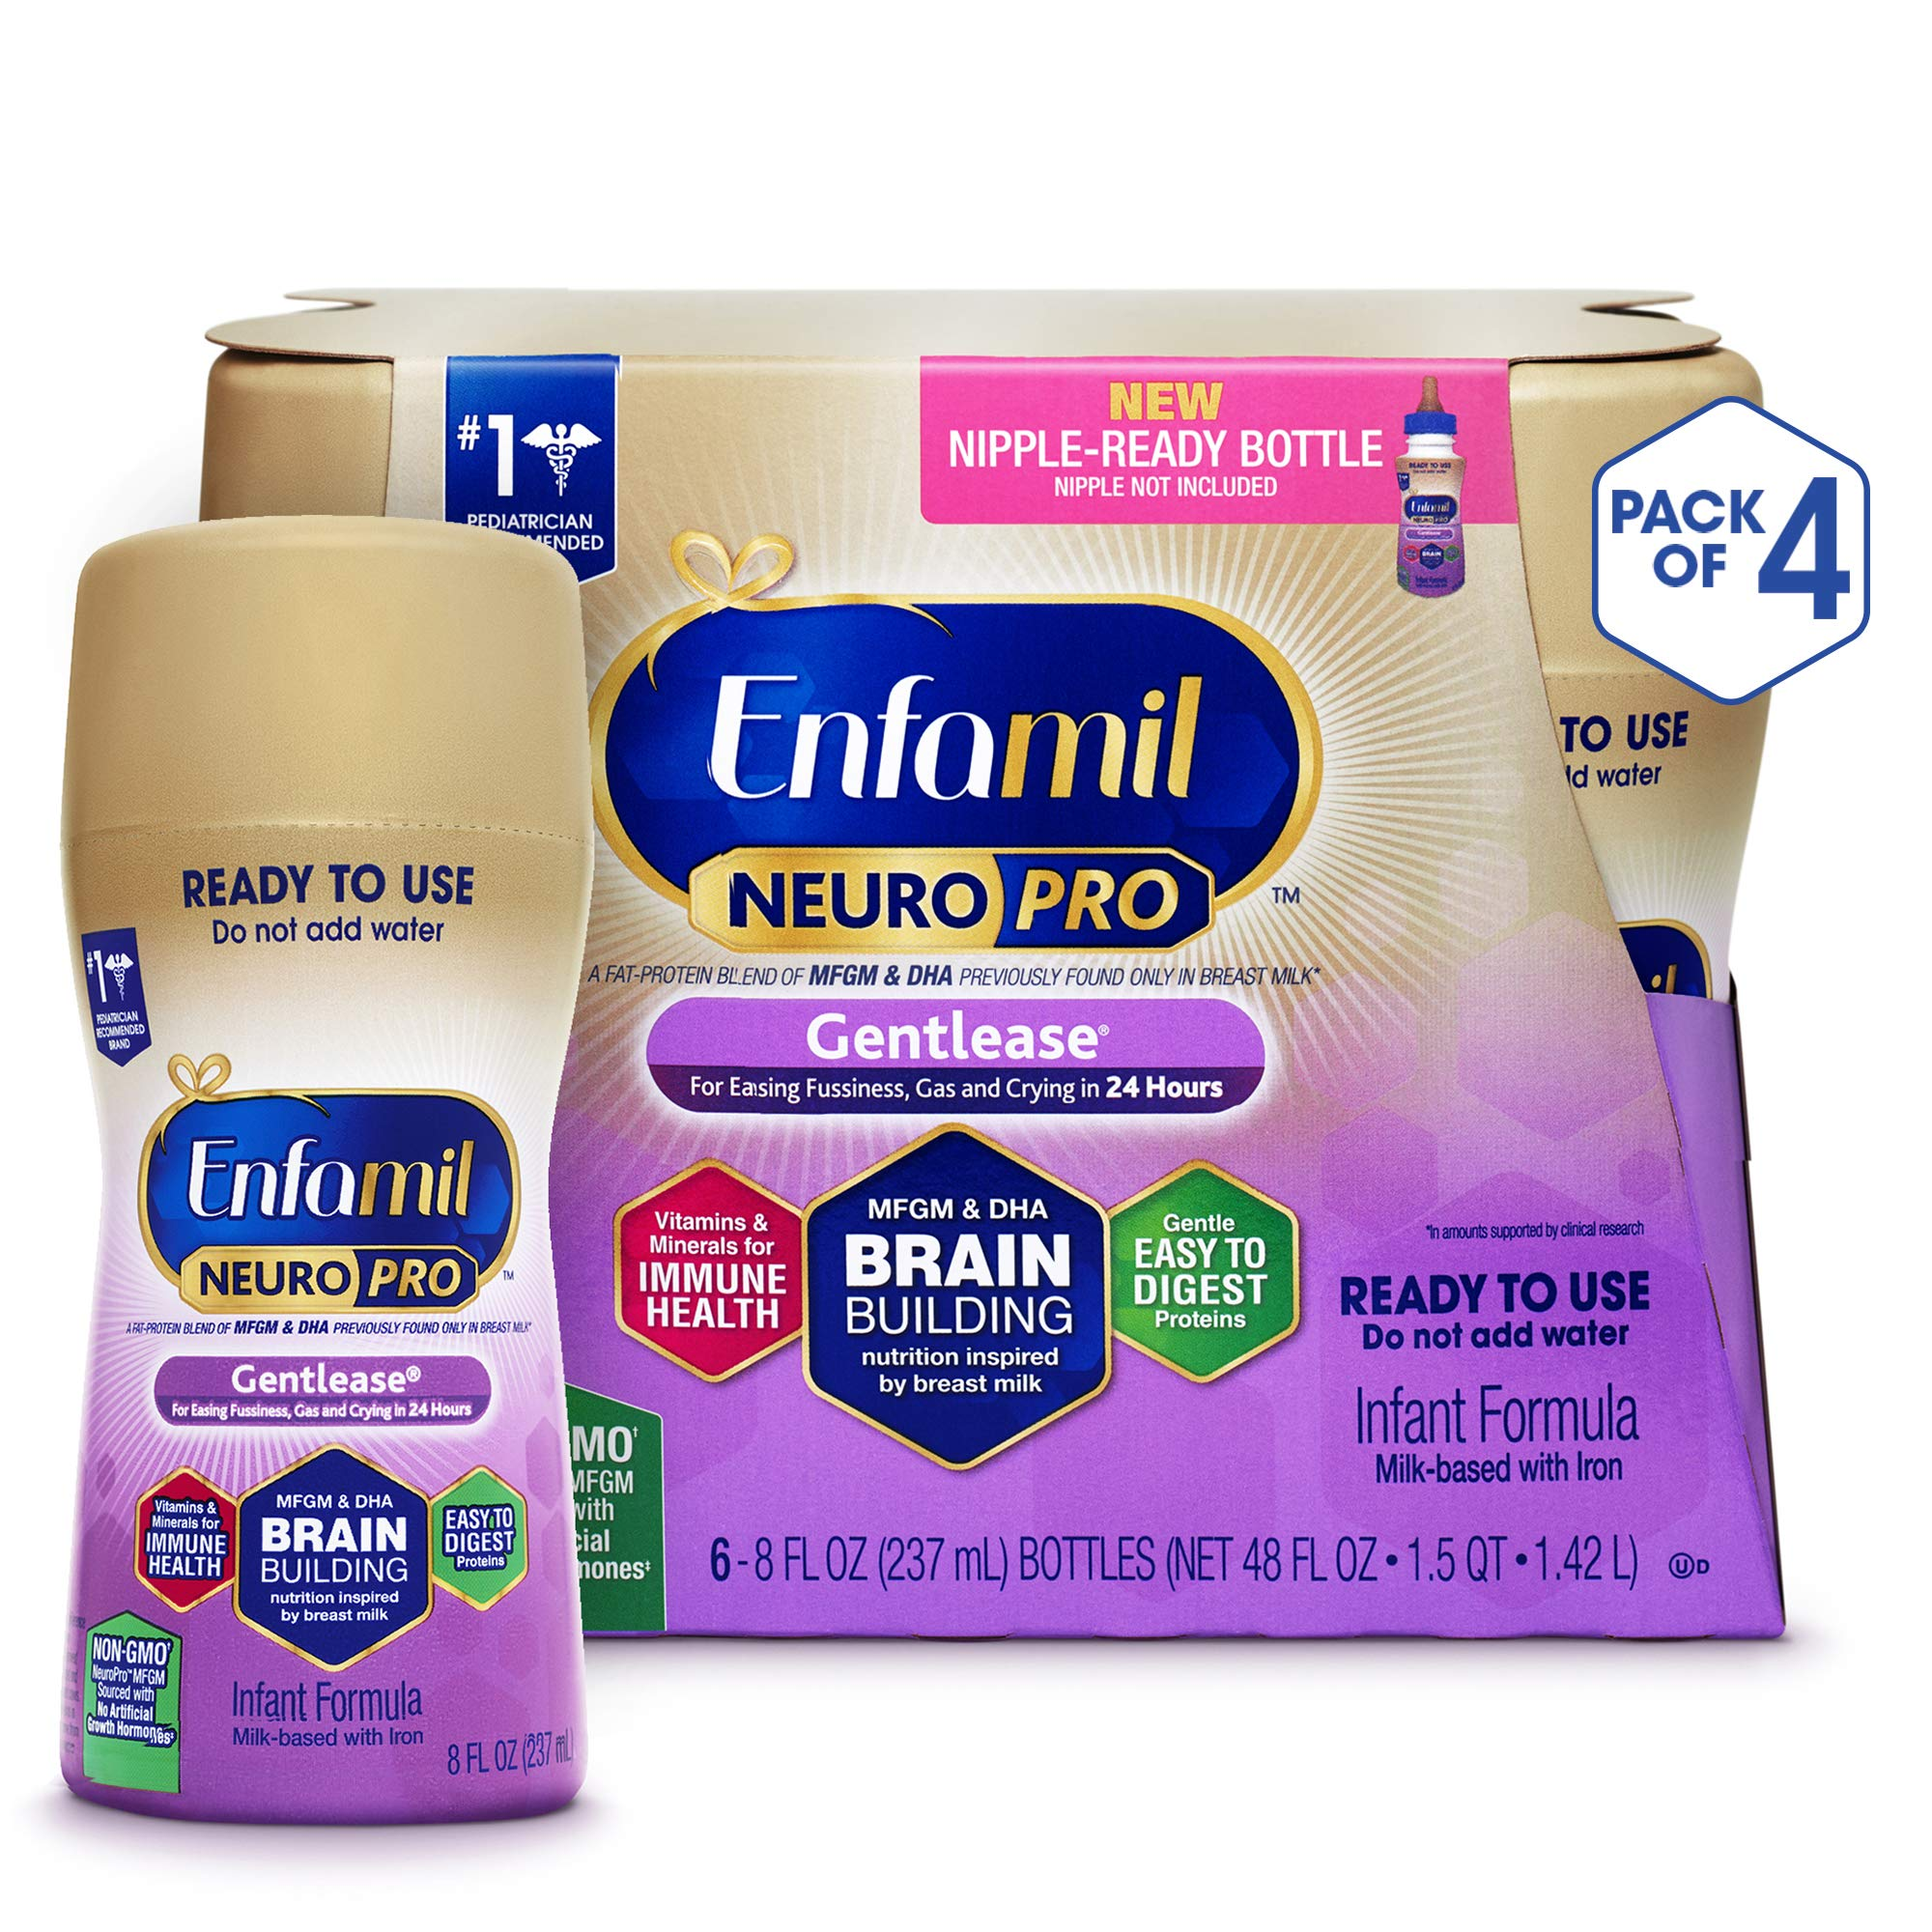 Enfamil NeuroPro Gentlease Ready to Feed Baby Formula Milk, 8 fluid ounce (24 count) - MFGM, Omega 3 DHA, Probiotics, Iron & Immune Support